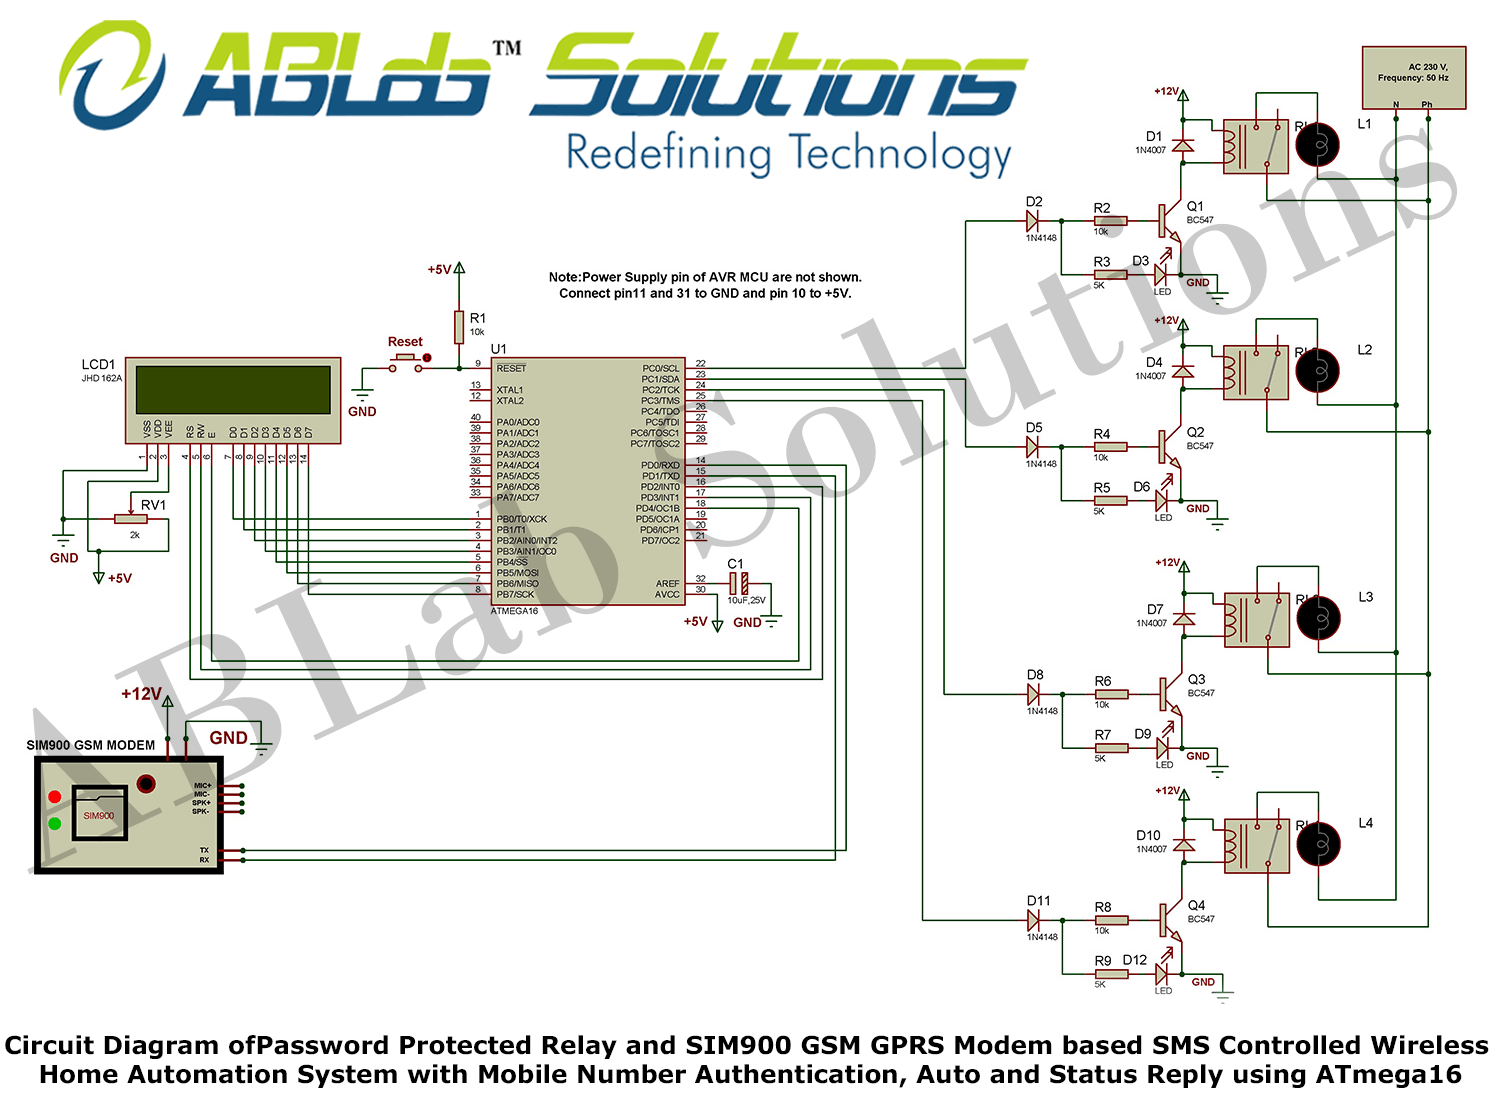 Circuit Diagram Of Password Protected Relay And Sim900 Gsm Gprs Modem Based Sms Controlled Wireless Hom Home Automation System Home Automation Microcontrollers